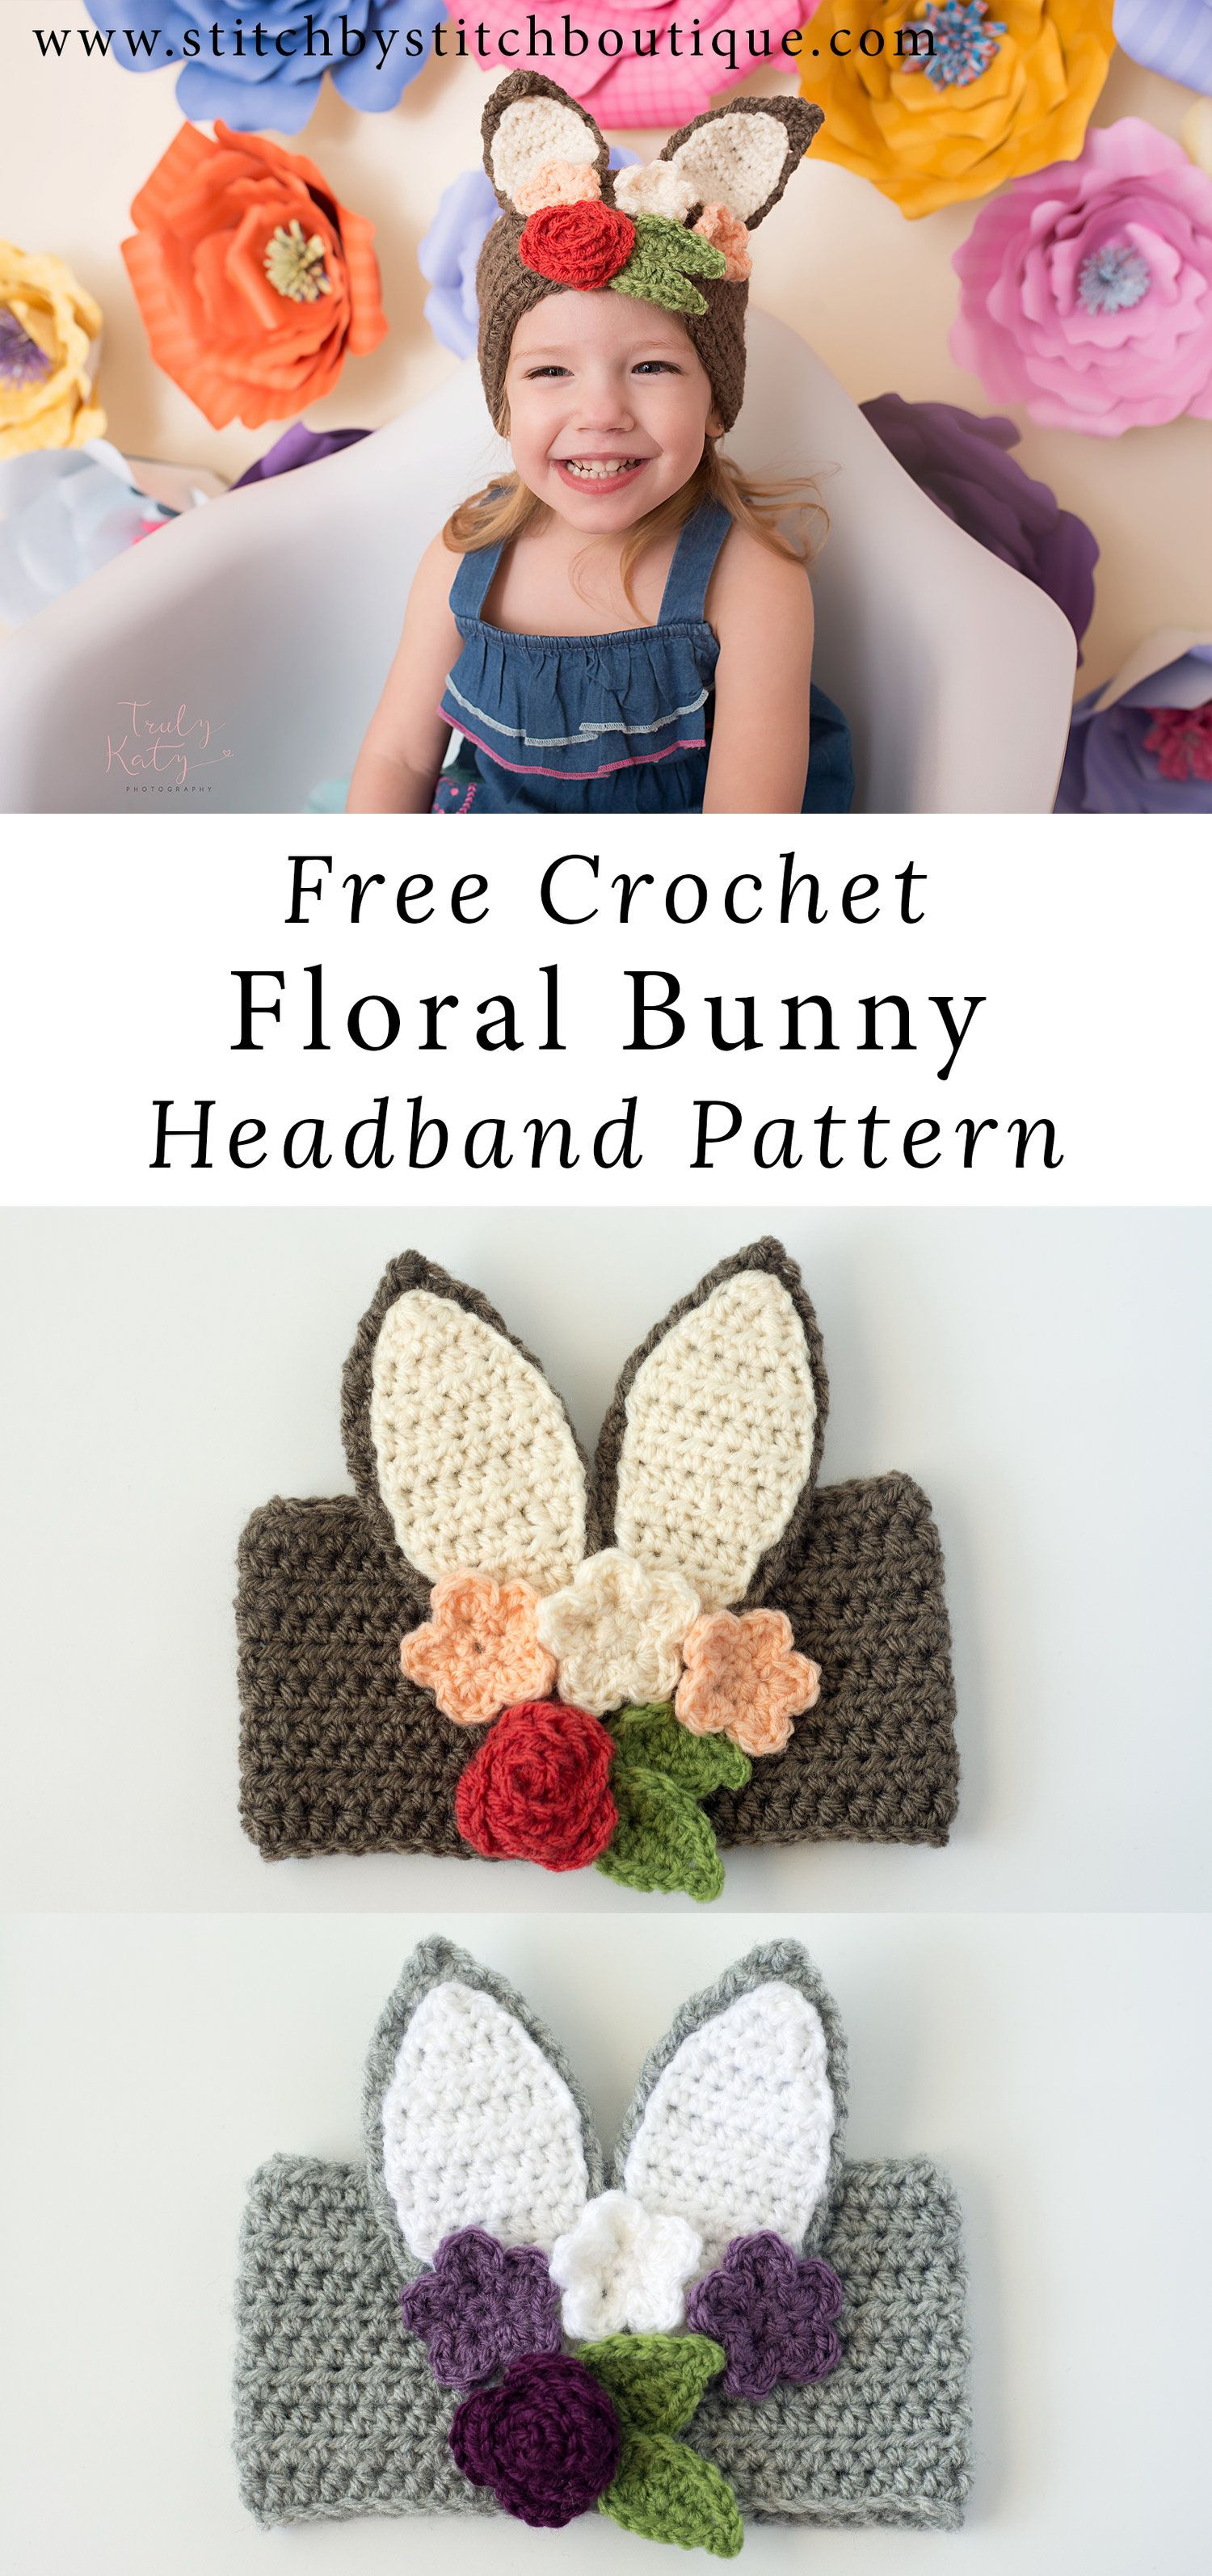 Free Crochet Floral Bunny Headband Pattern | Crochet Patterns ...